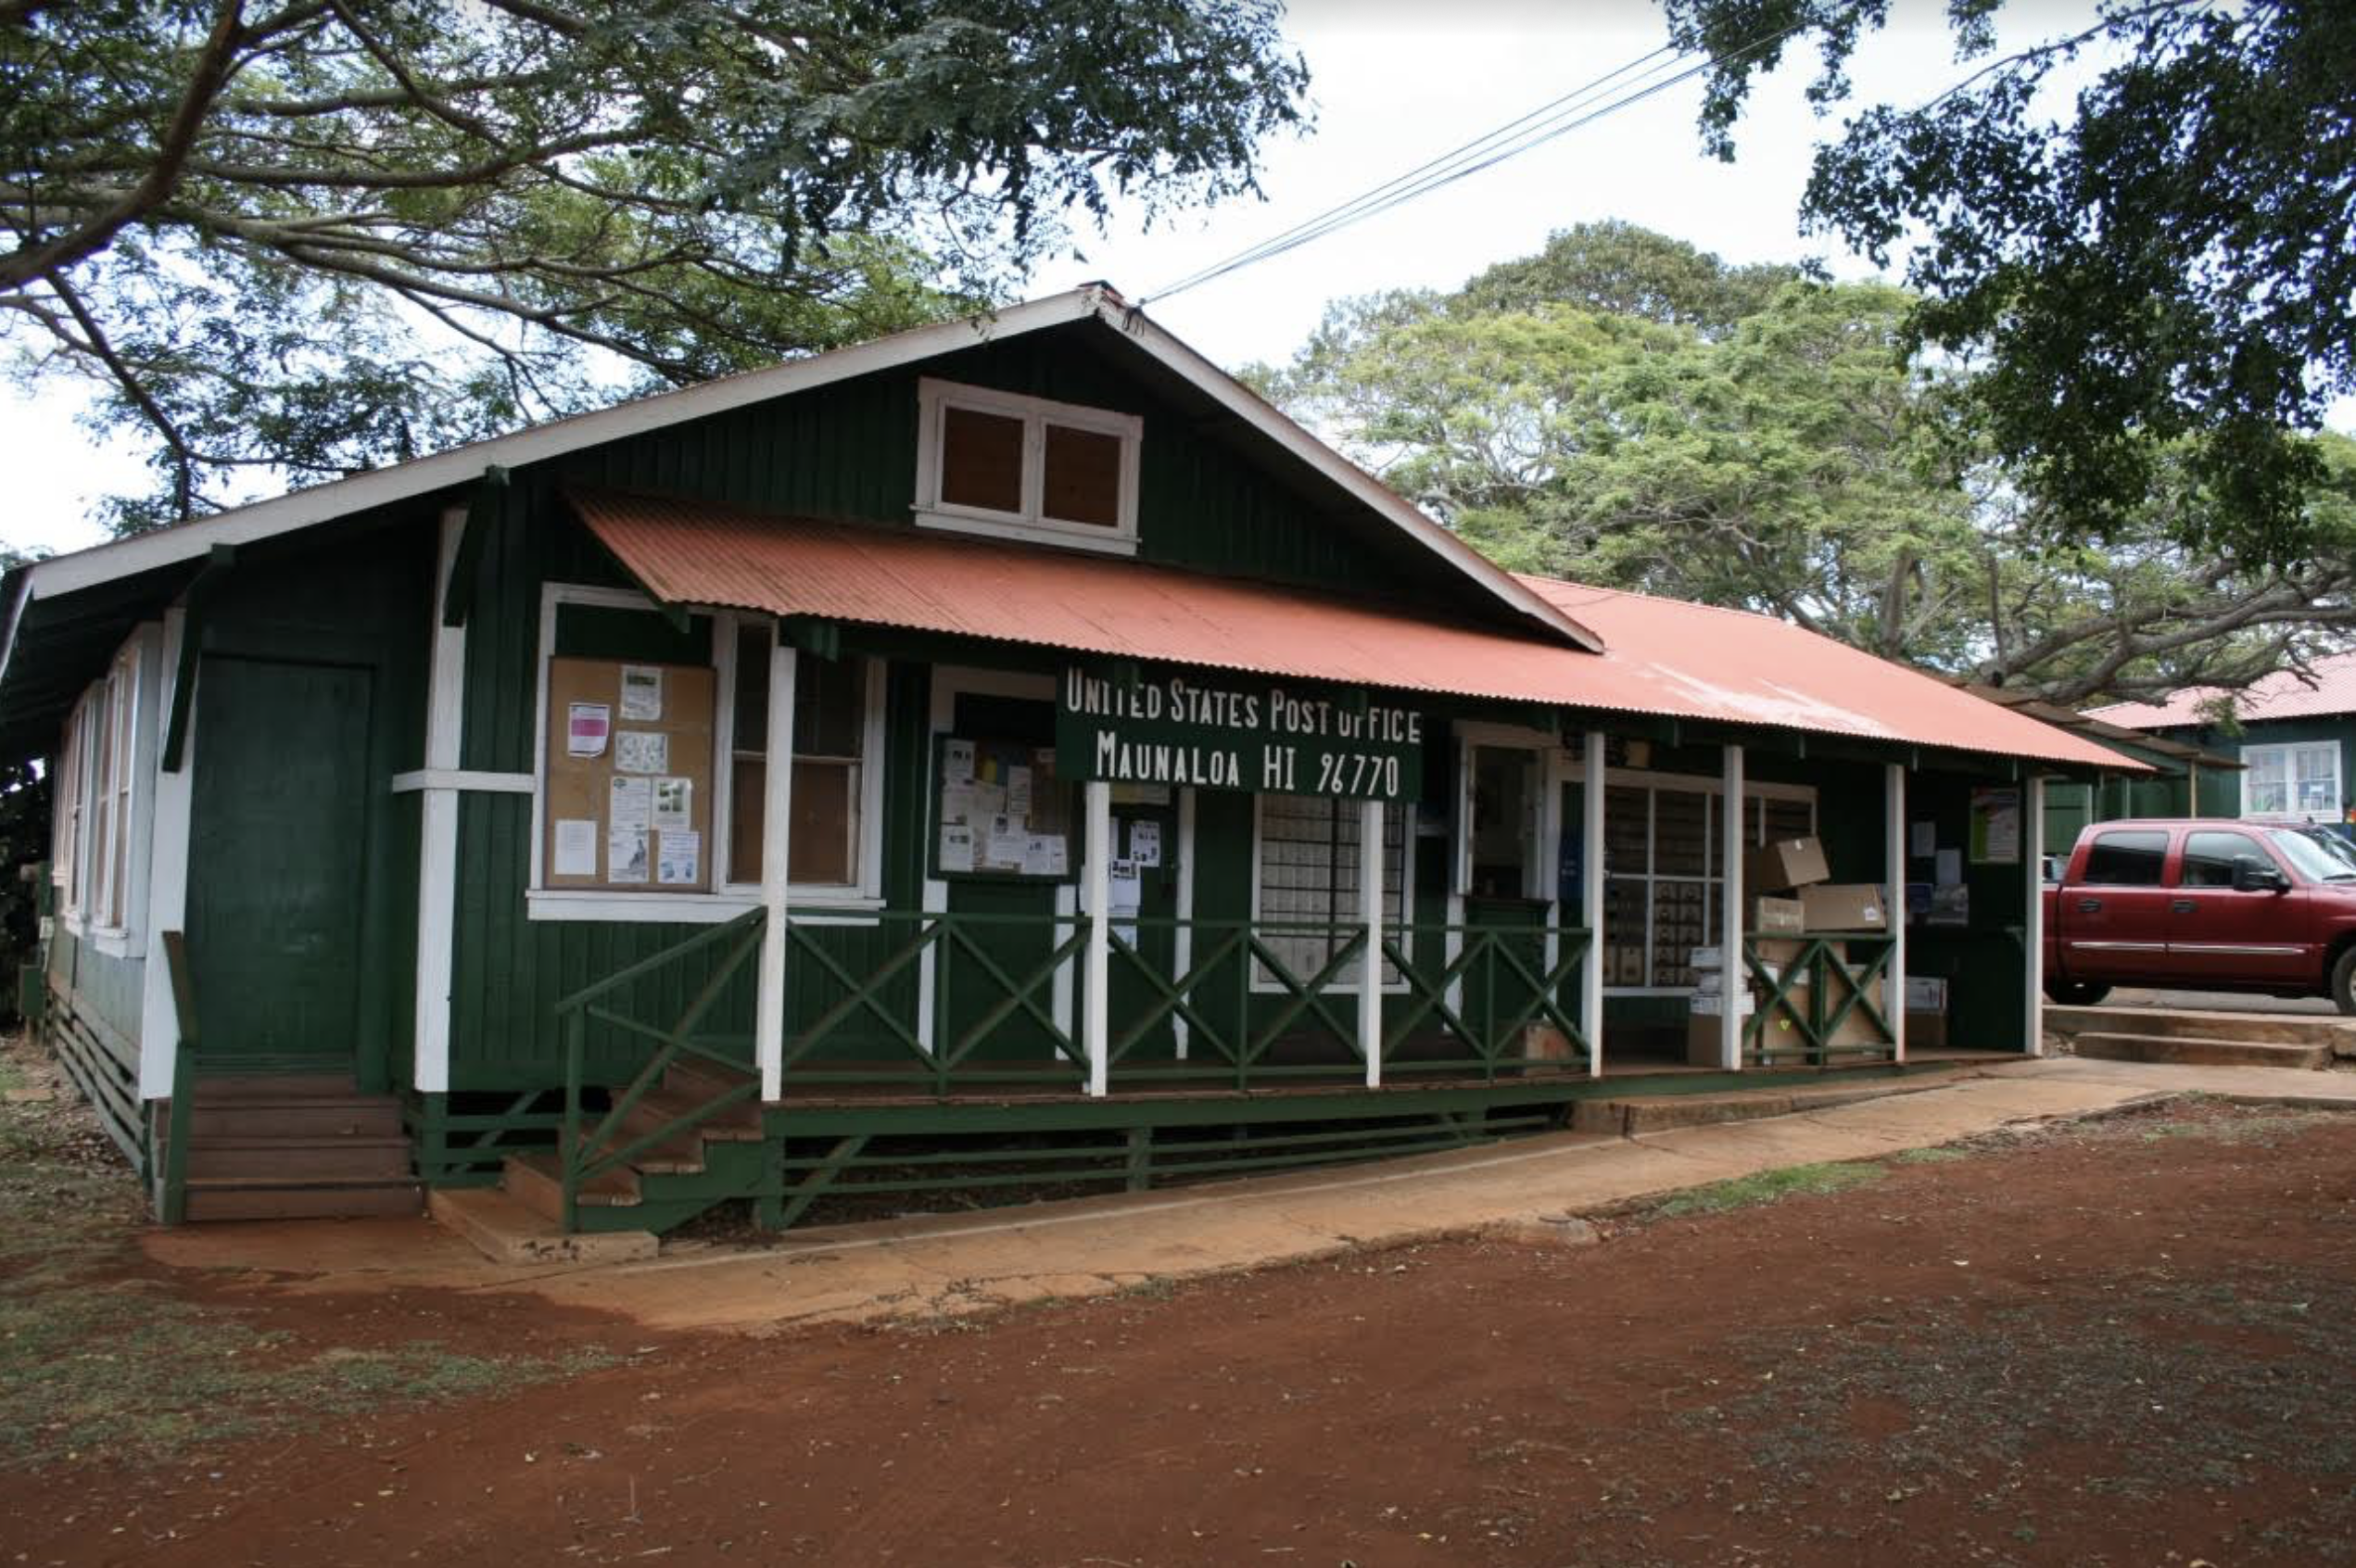 Structural Concerns Prompt Temporary Closure of Maunaloa Post Office on Moloka'i